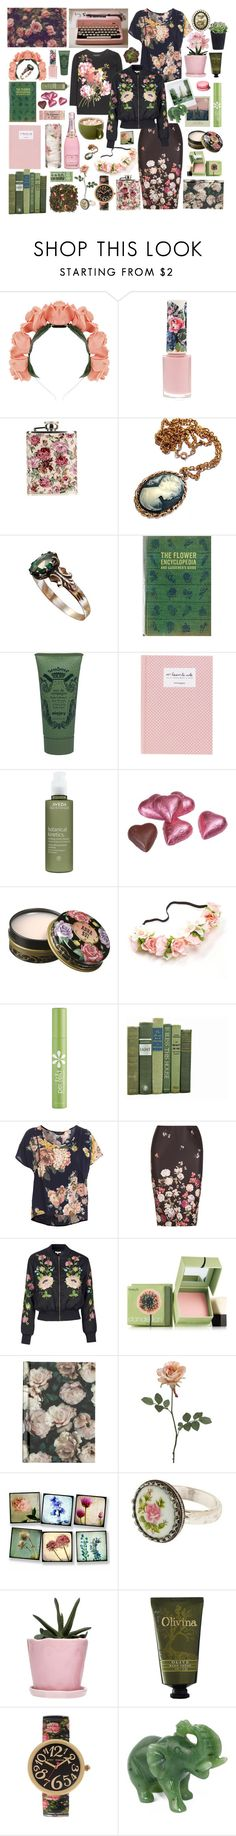 """A Style Inspired by Floral Bouquets"" by bnspyrd ❤ liked on Polyvore featuring Gucci, Paul & Joe, Polaroid, Sisley, Aveda, Anna Sui, Per-fékt Beauty, Miss Selfridge, New Look and Topshop"